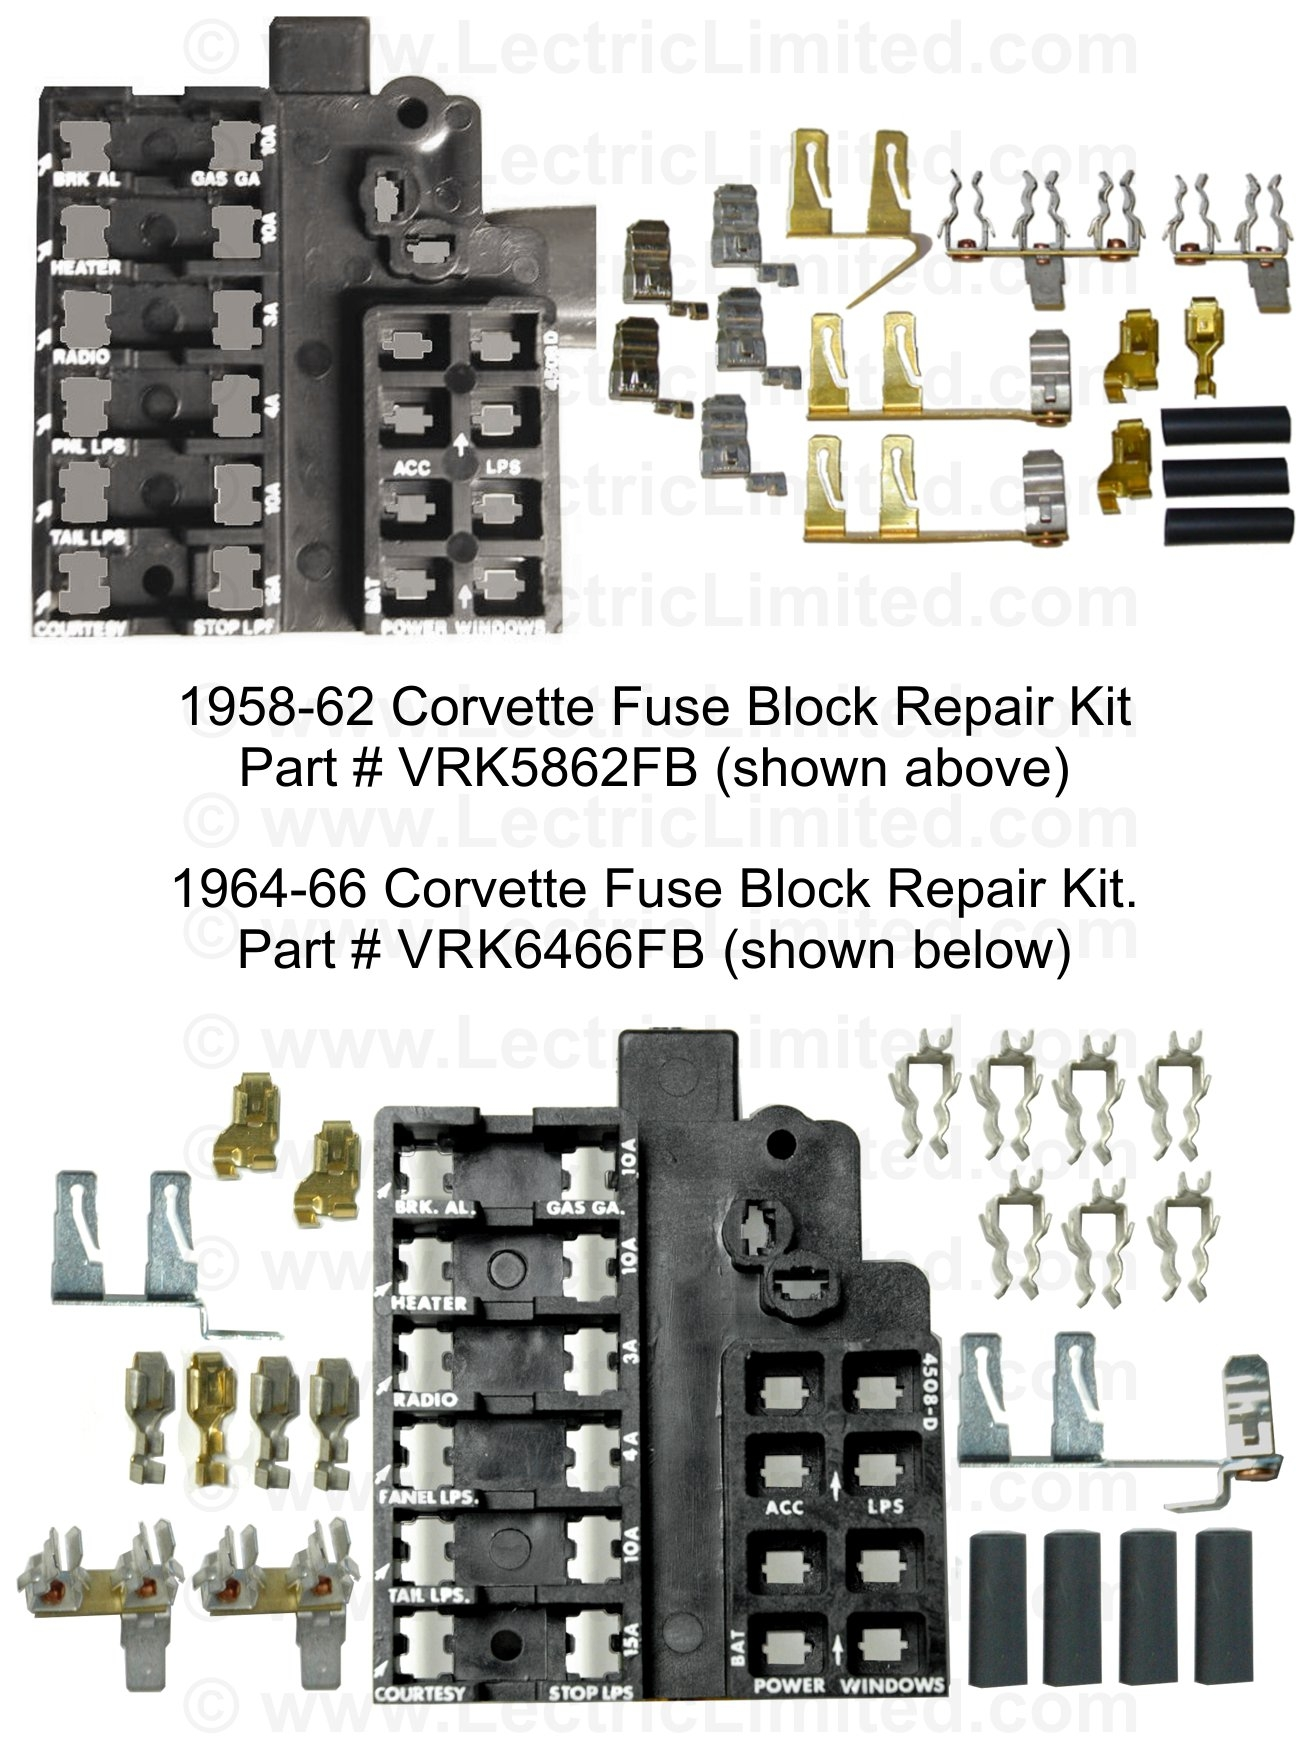 car fuse box repair kit wiring schematics diagram rh mychampagnedaze com  Car Fuse Box Car Fuse Box